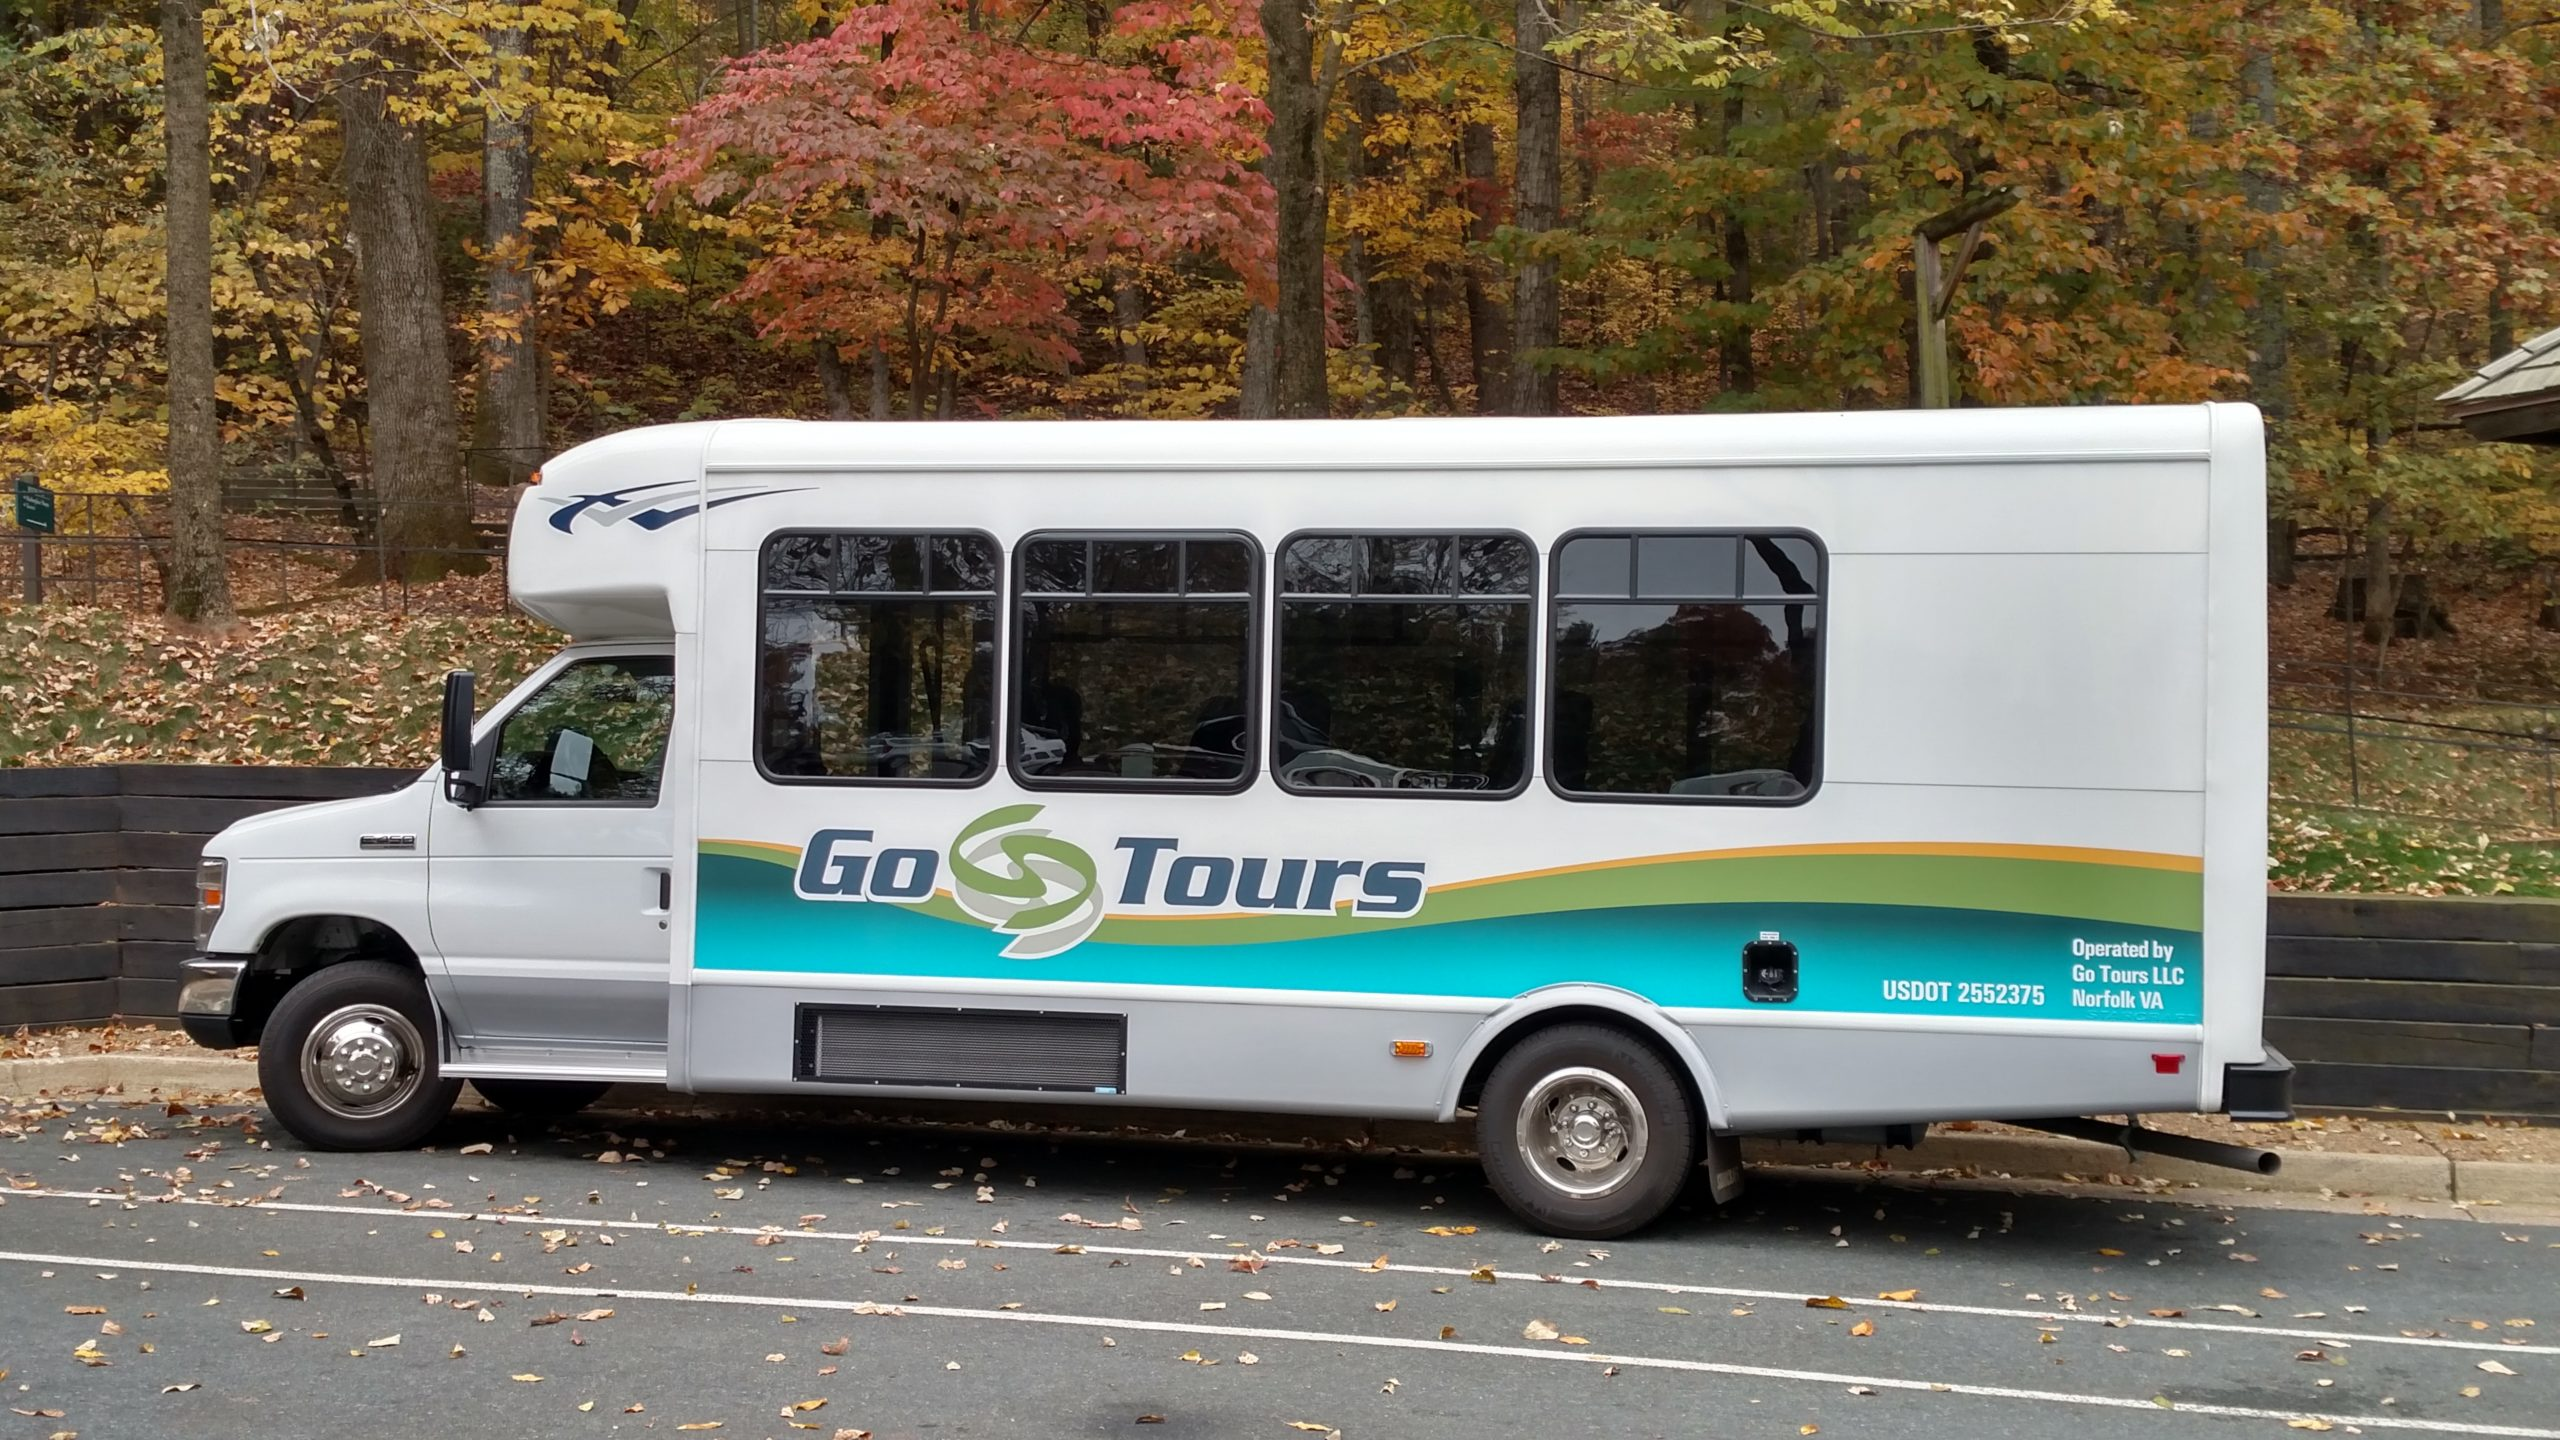 Introducing Go Tours Select